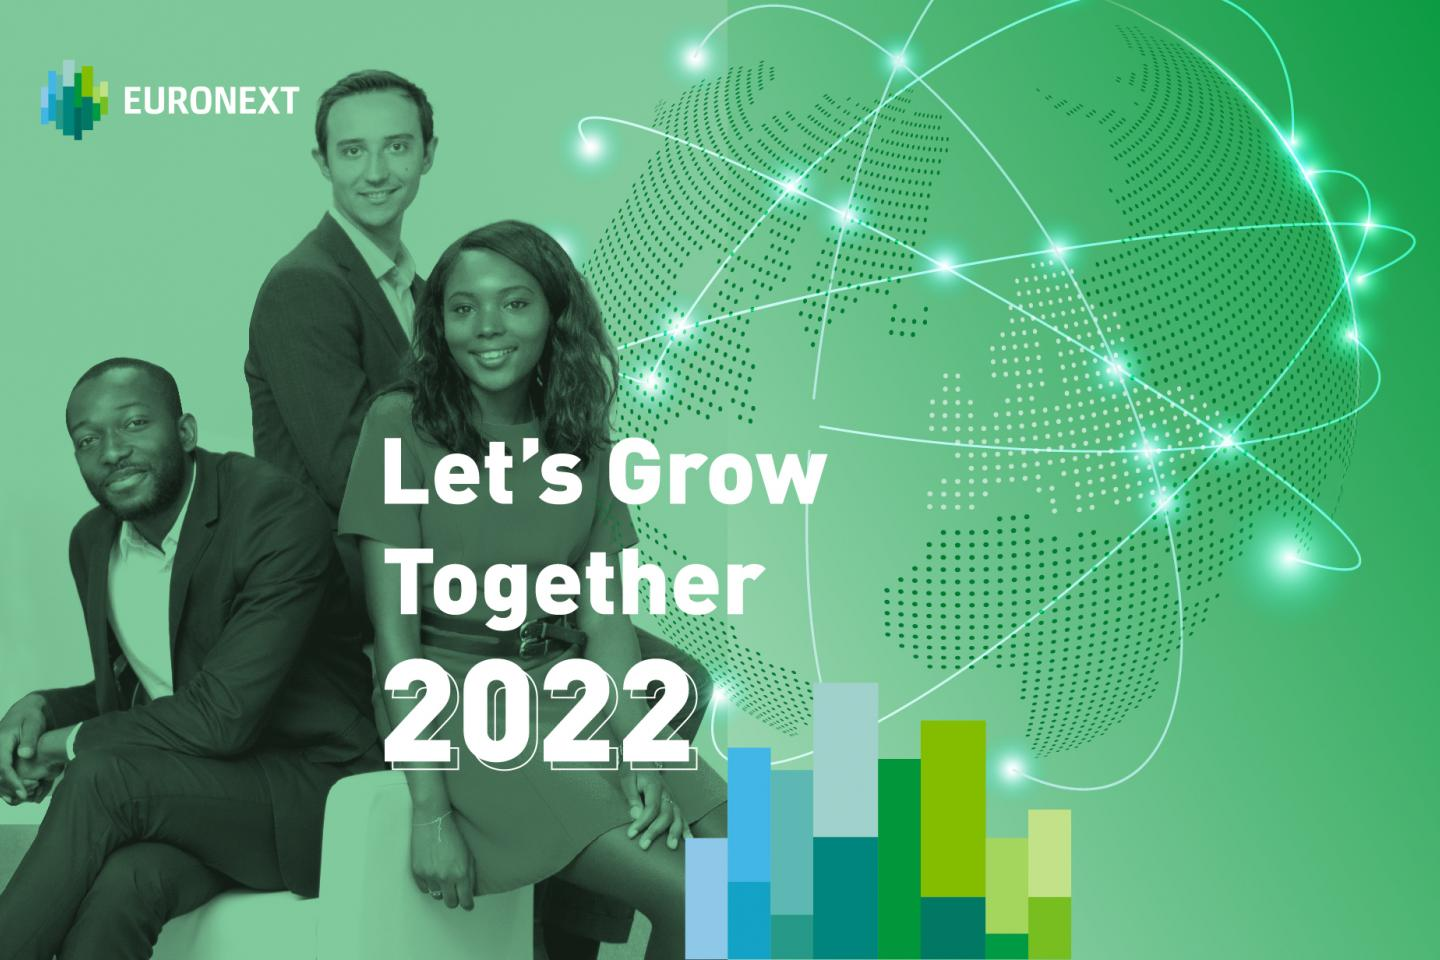 Let's Grow Together 2022